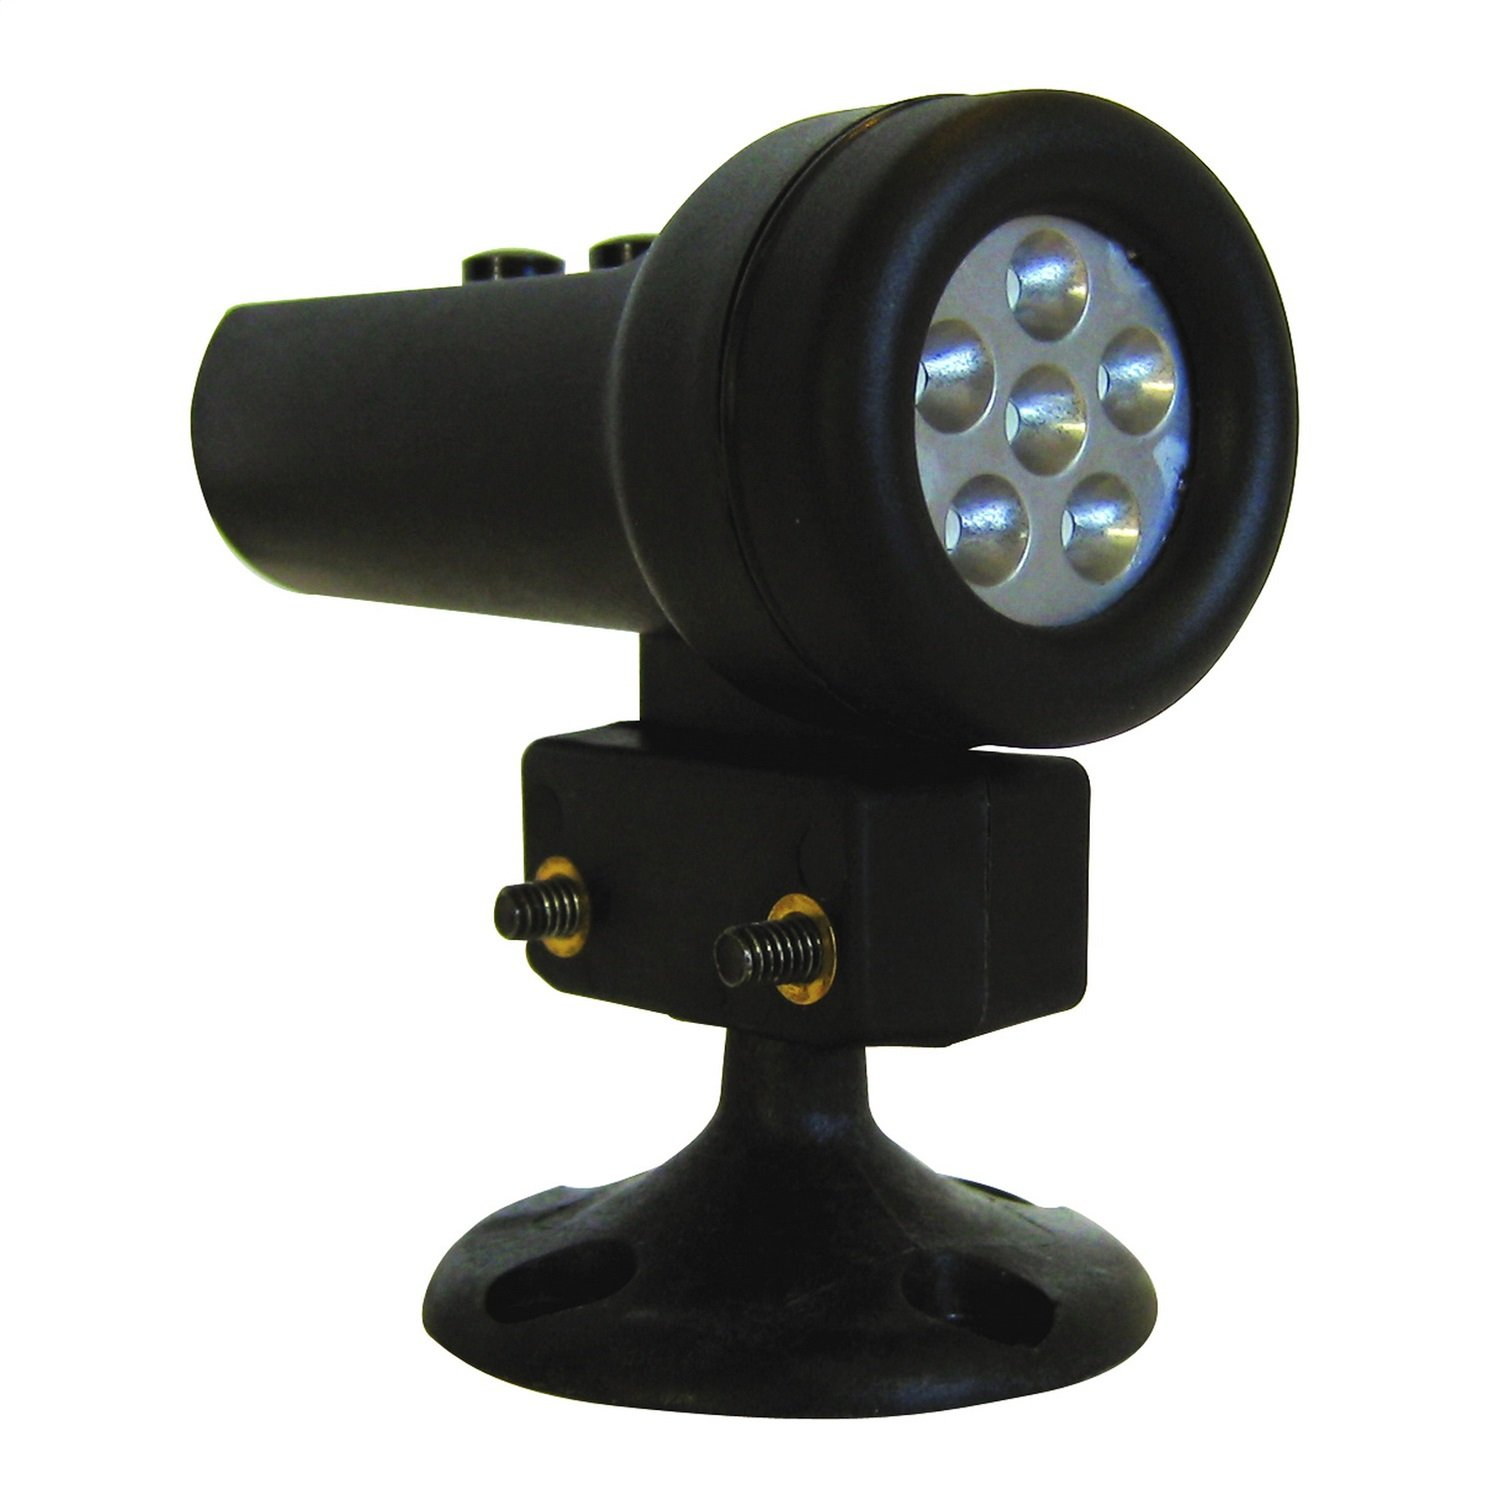 Auto Meter 5321 Black Mini Shift Light with Pedestal Mount and 5 Red LED for Race Use